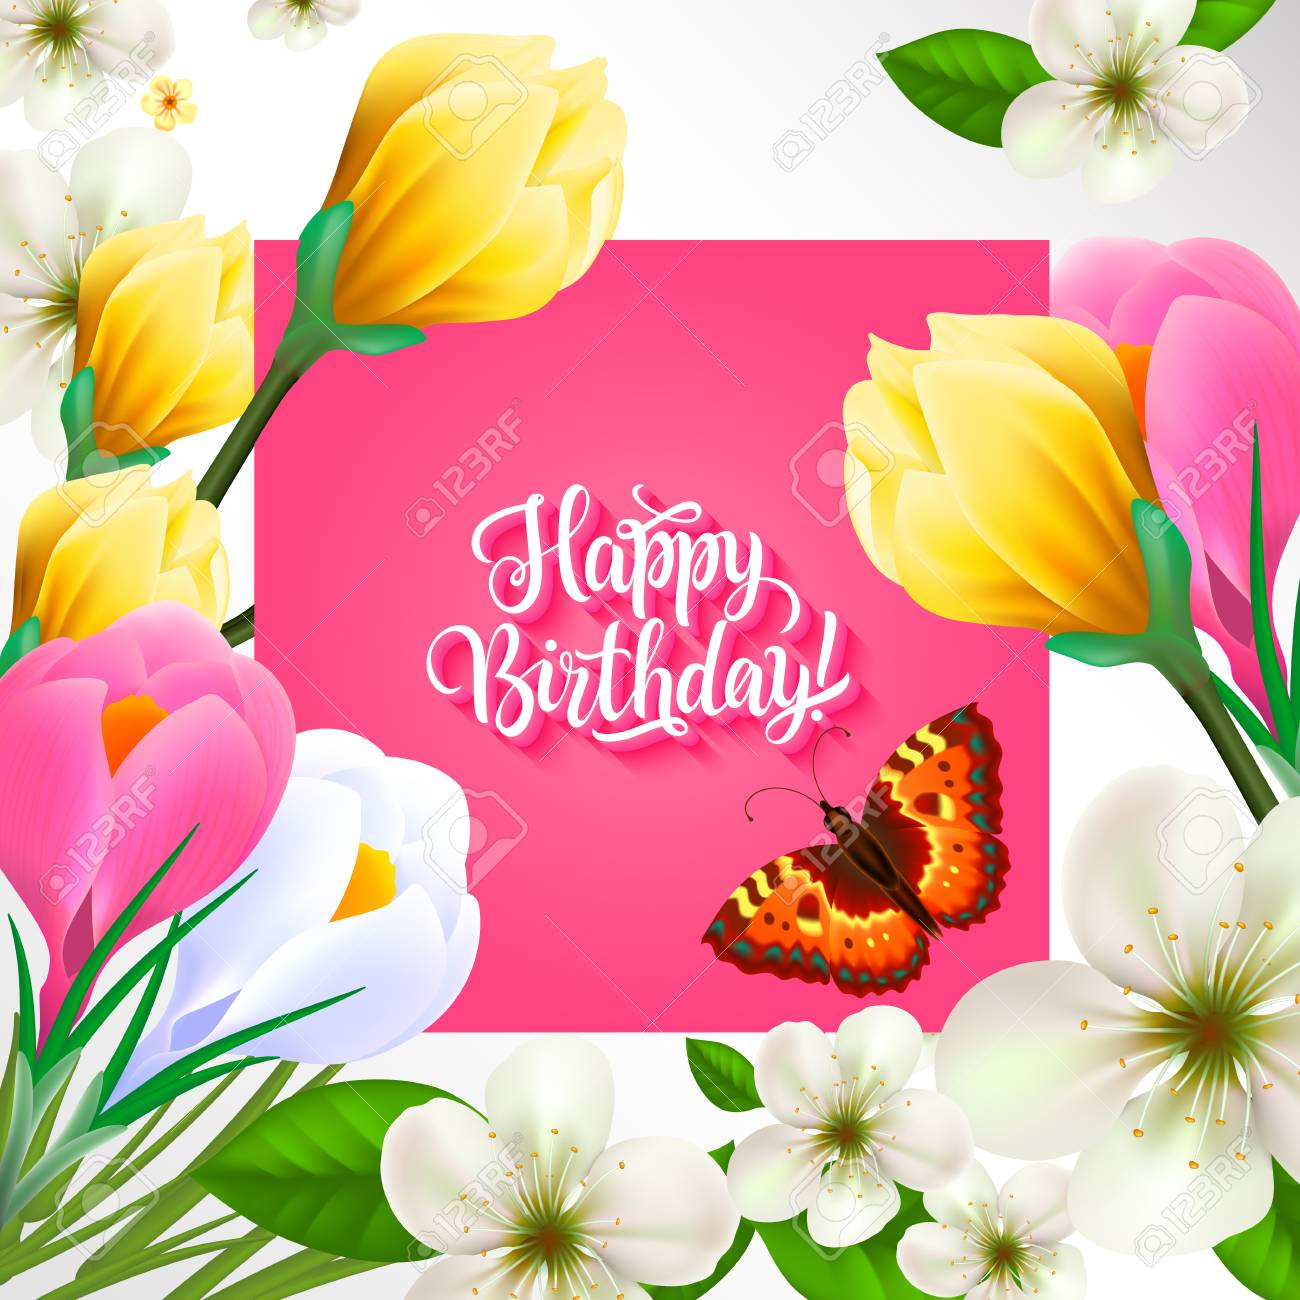 Happy birthday lettering with flowers and butterfly handwritten happy birthday lettering with flowers and butterfly handwritten text calligraphy can be used izmirmasajfo